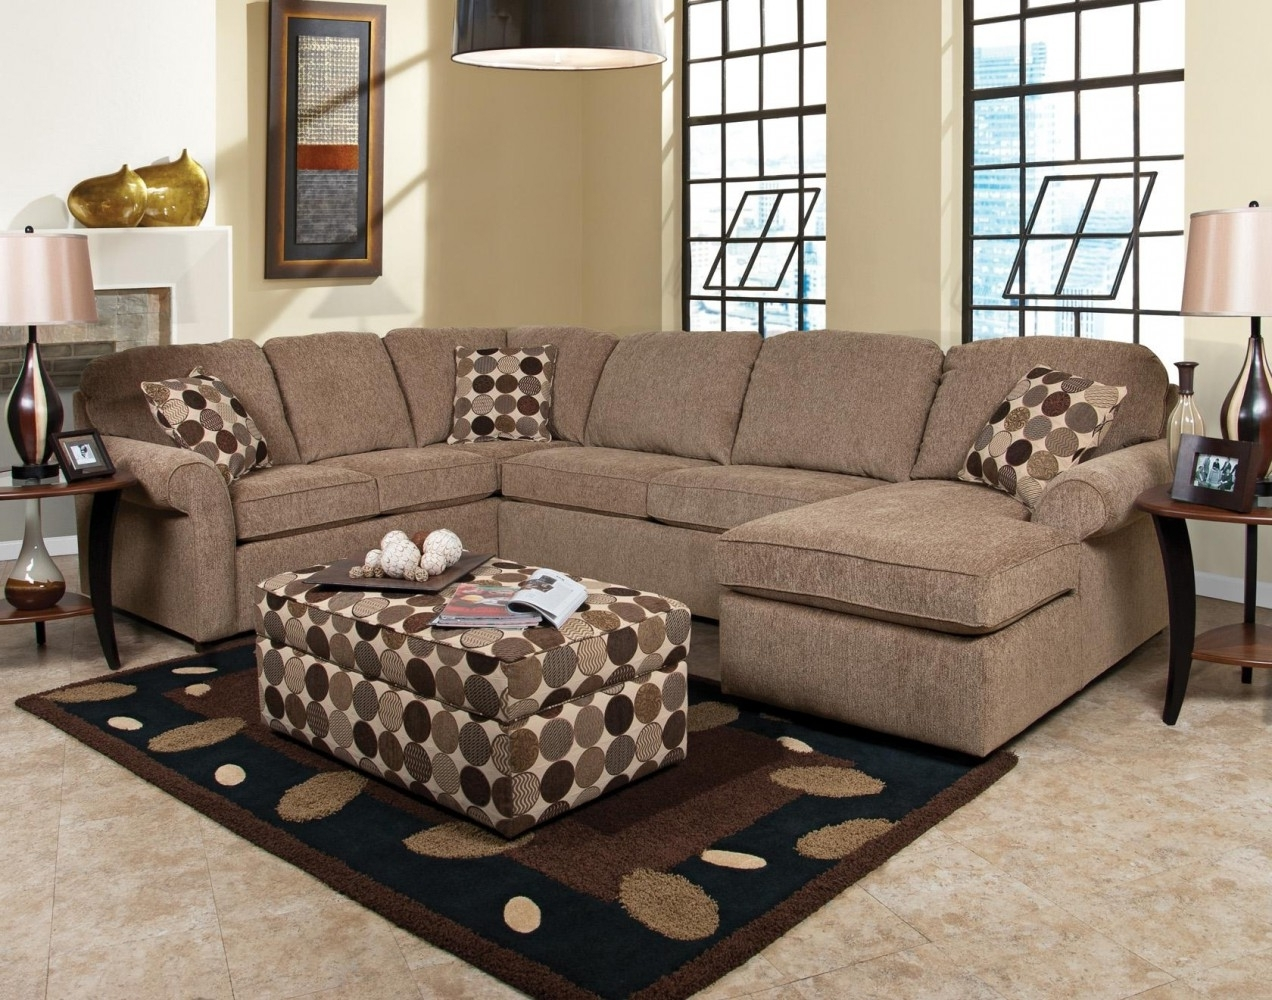 Grande Prairie Ab Sectional Sofas With Regard To Current January 10, 2017 – Sectional Sofas (View 10 of 20)